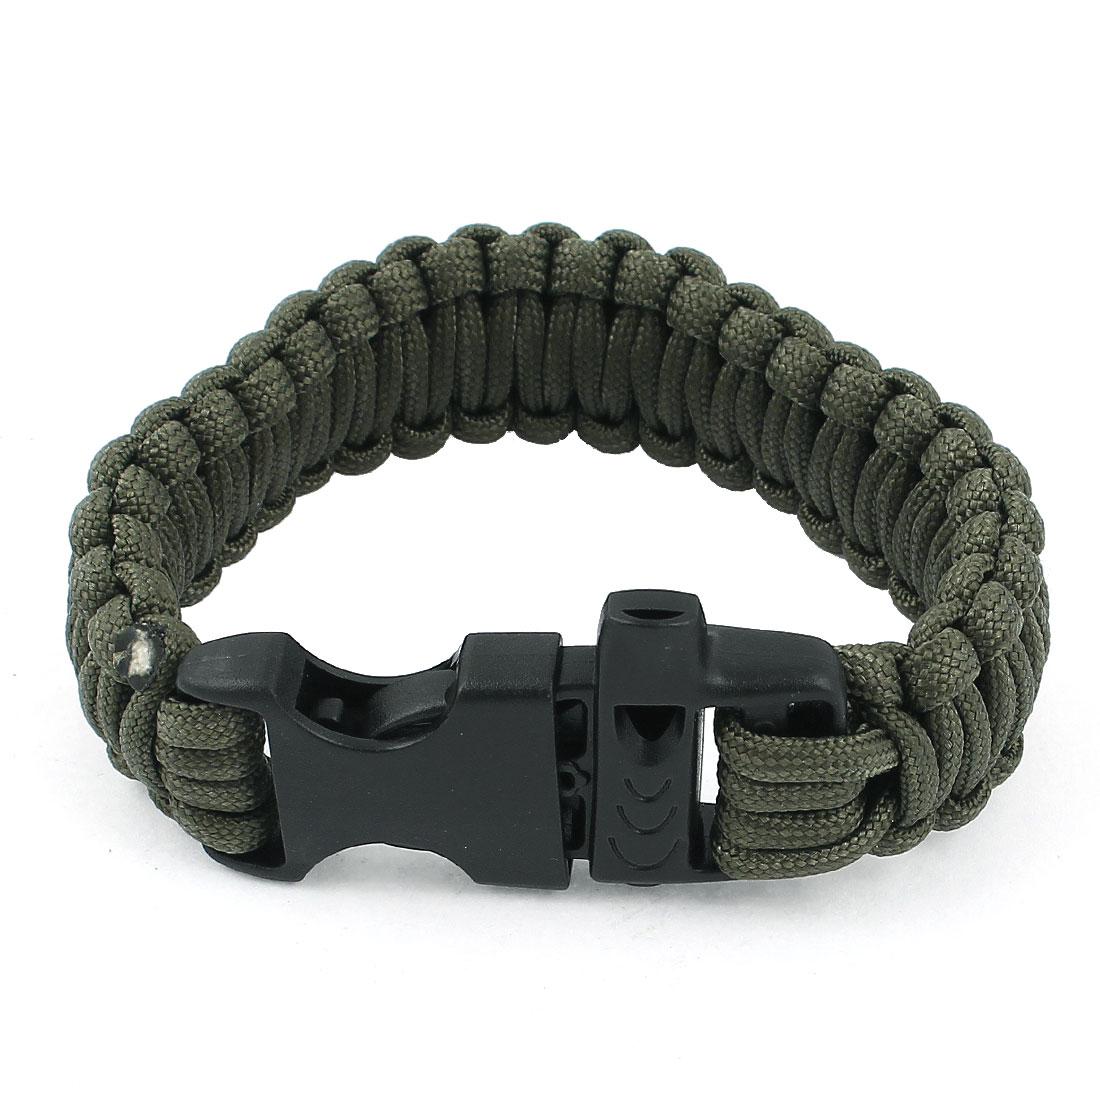 Outdoor Camping Army Green Nylon Weave Release Buckle Self-Rescue Cord Survival Bracelet